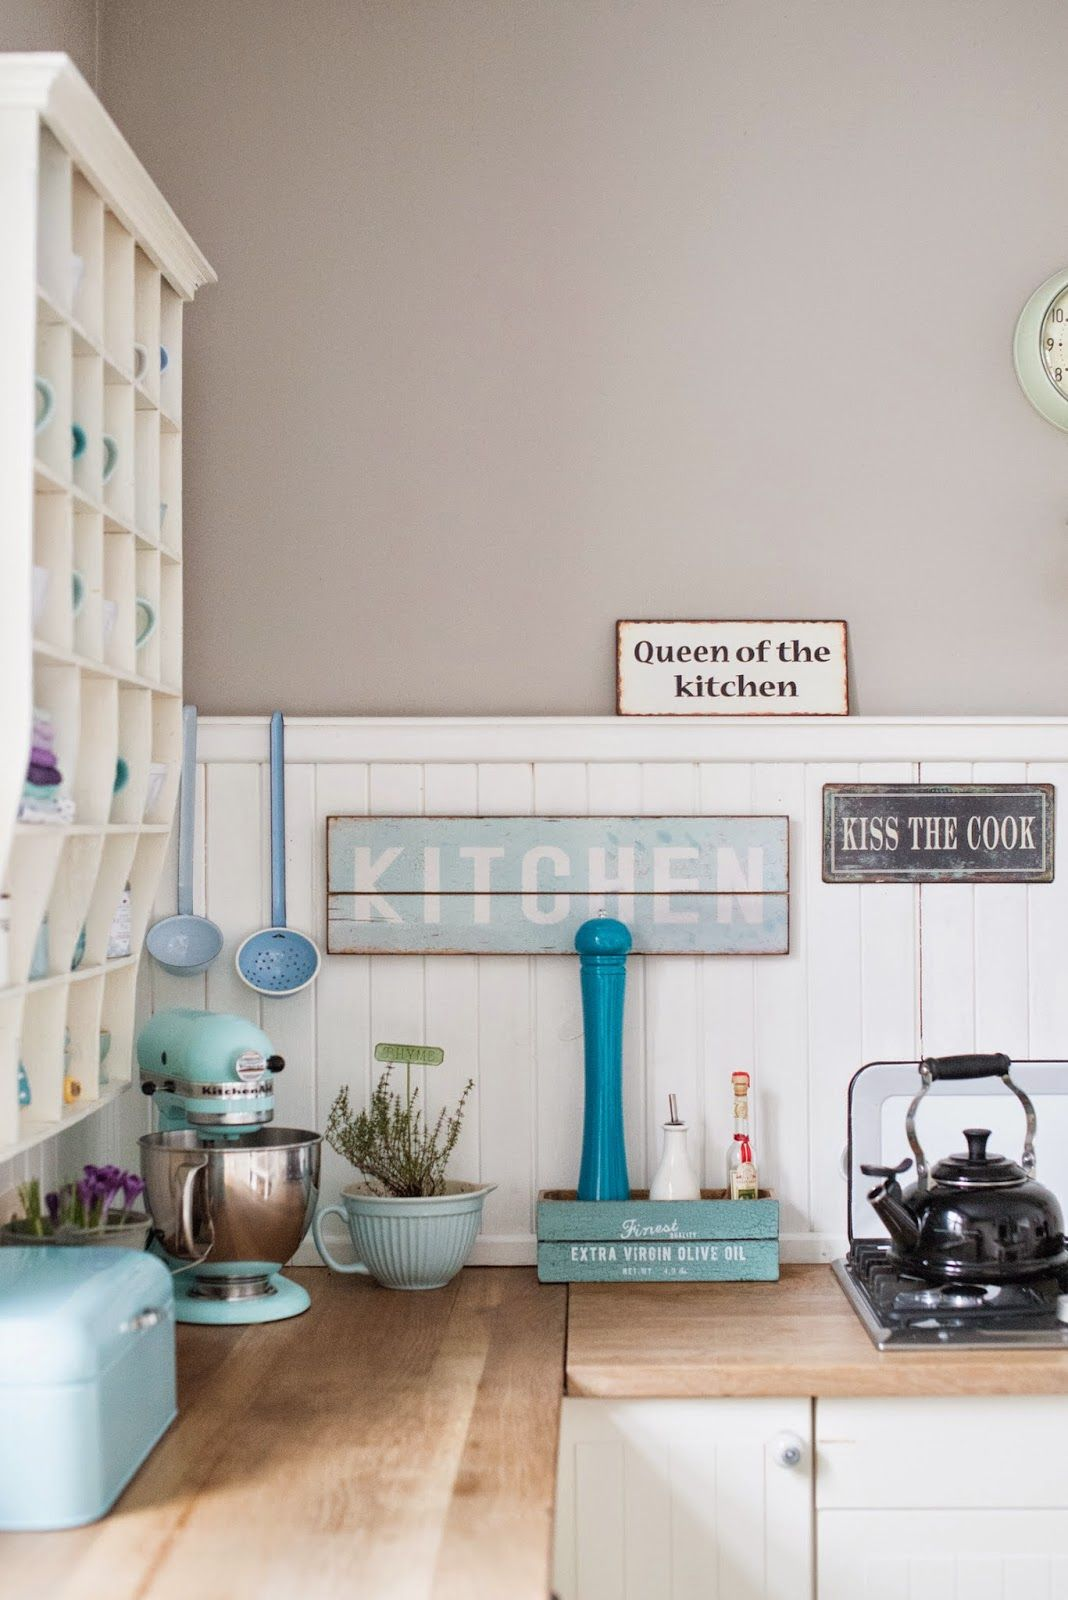 Minty house blog kitchen pinterest minty house house and